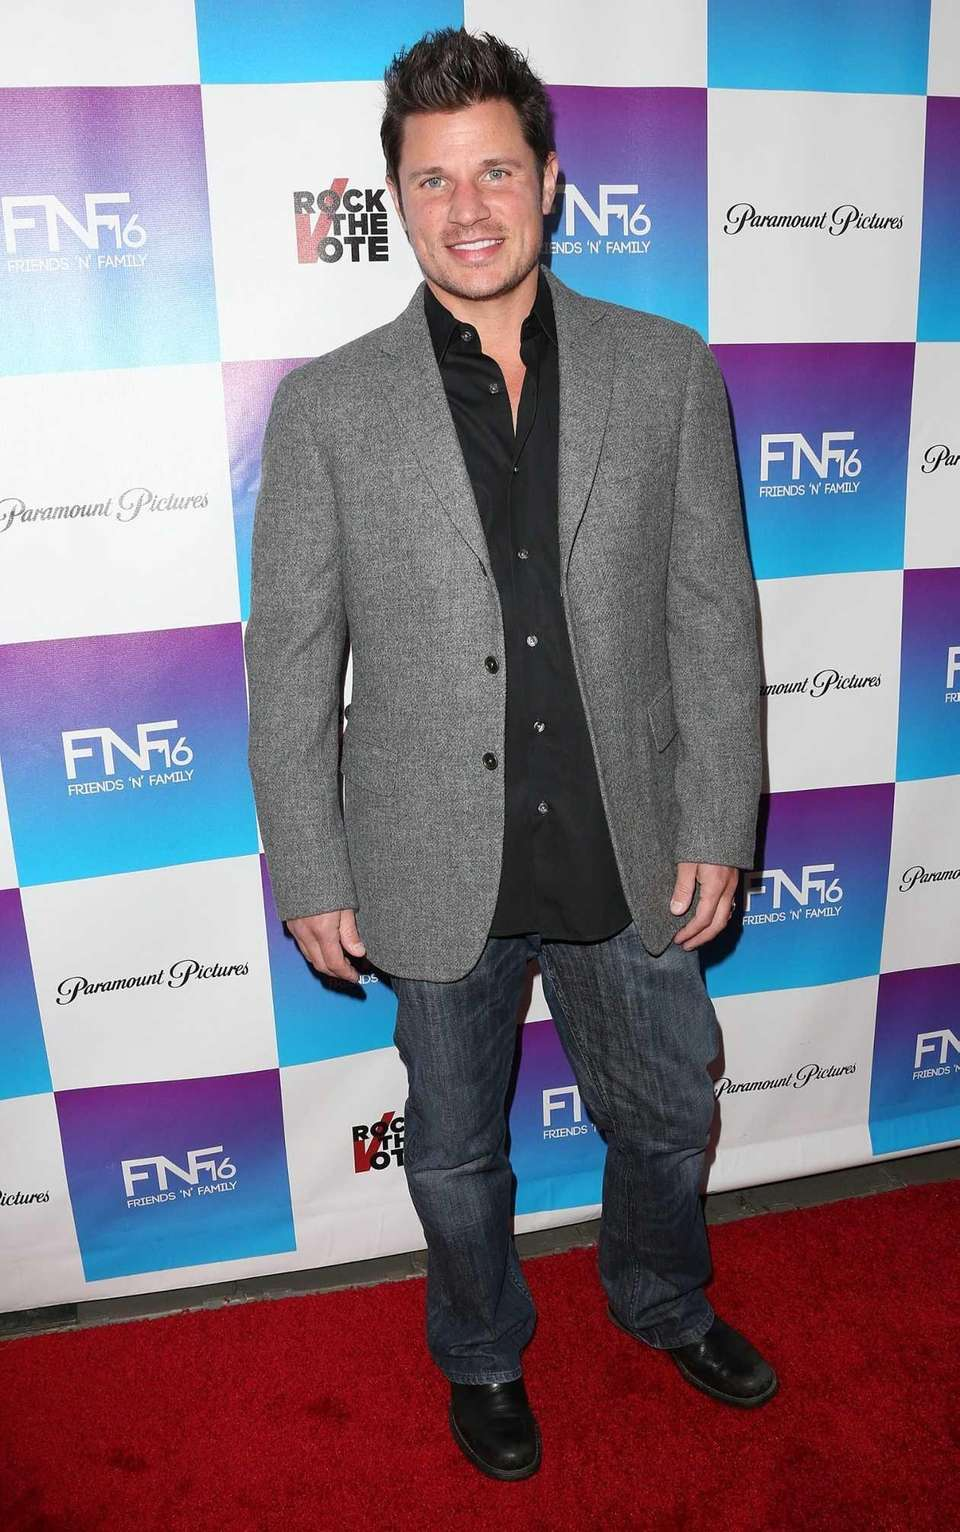 Singer Nick Lachey, born on Nov. 9, 1973.